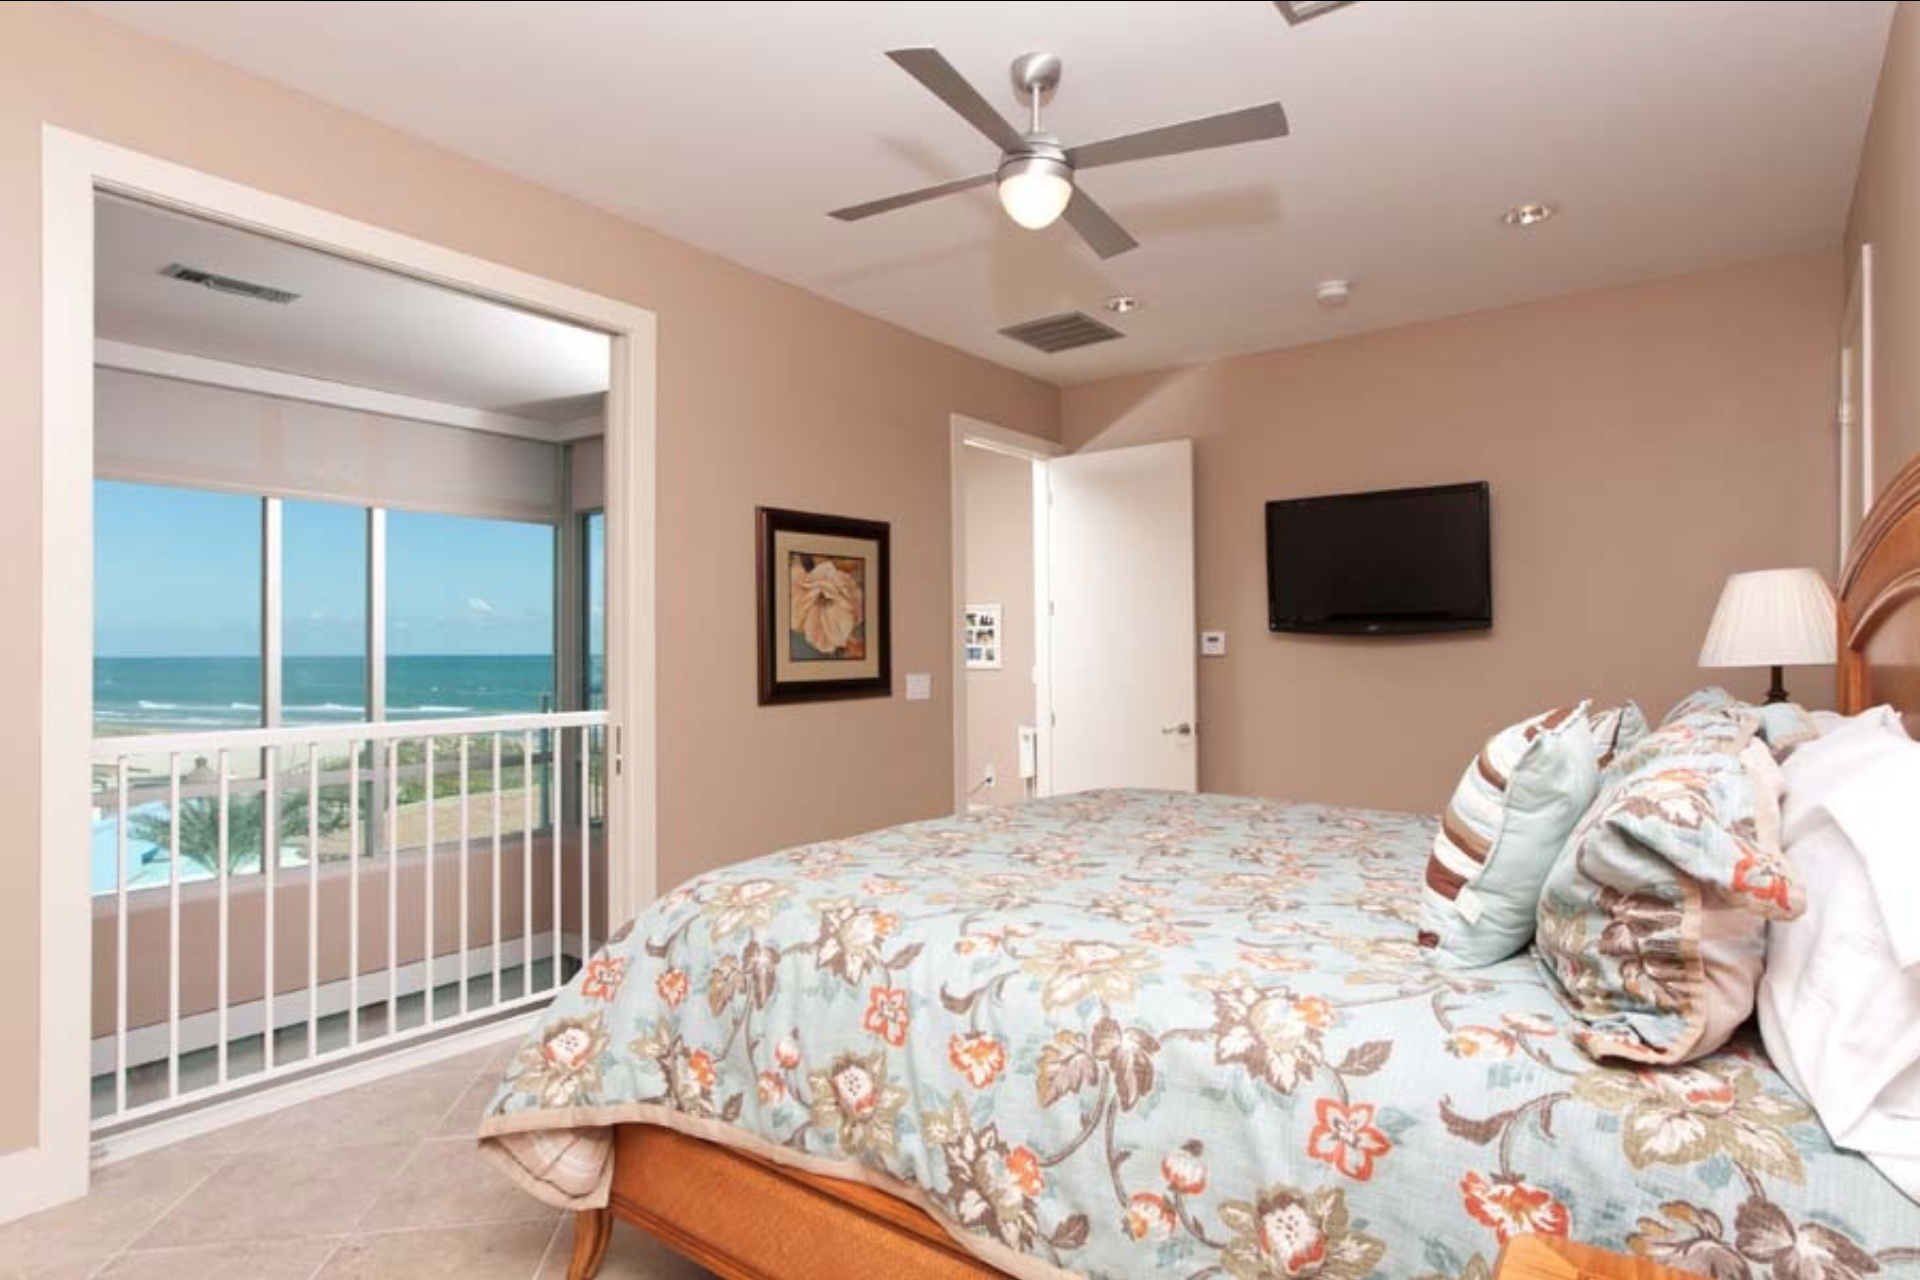 Master bedroom with partial views of the beach.